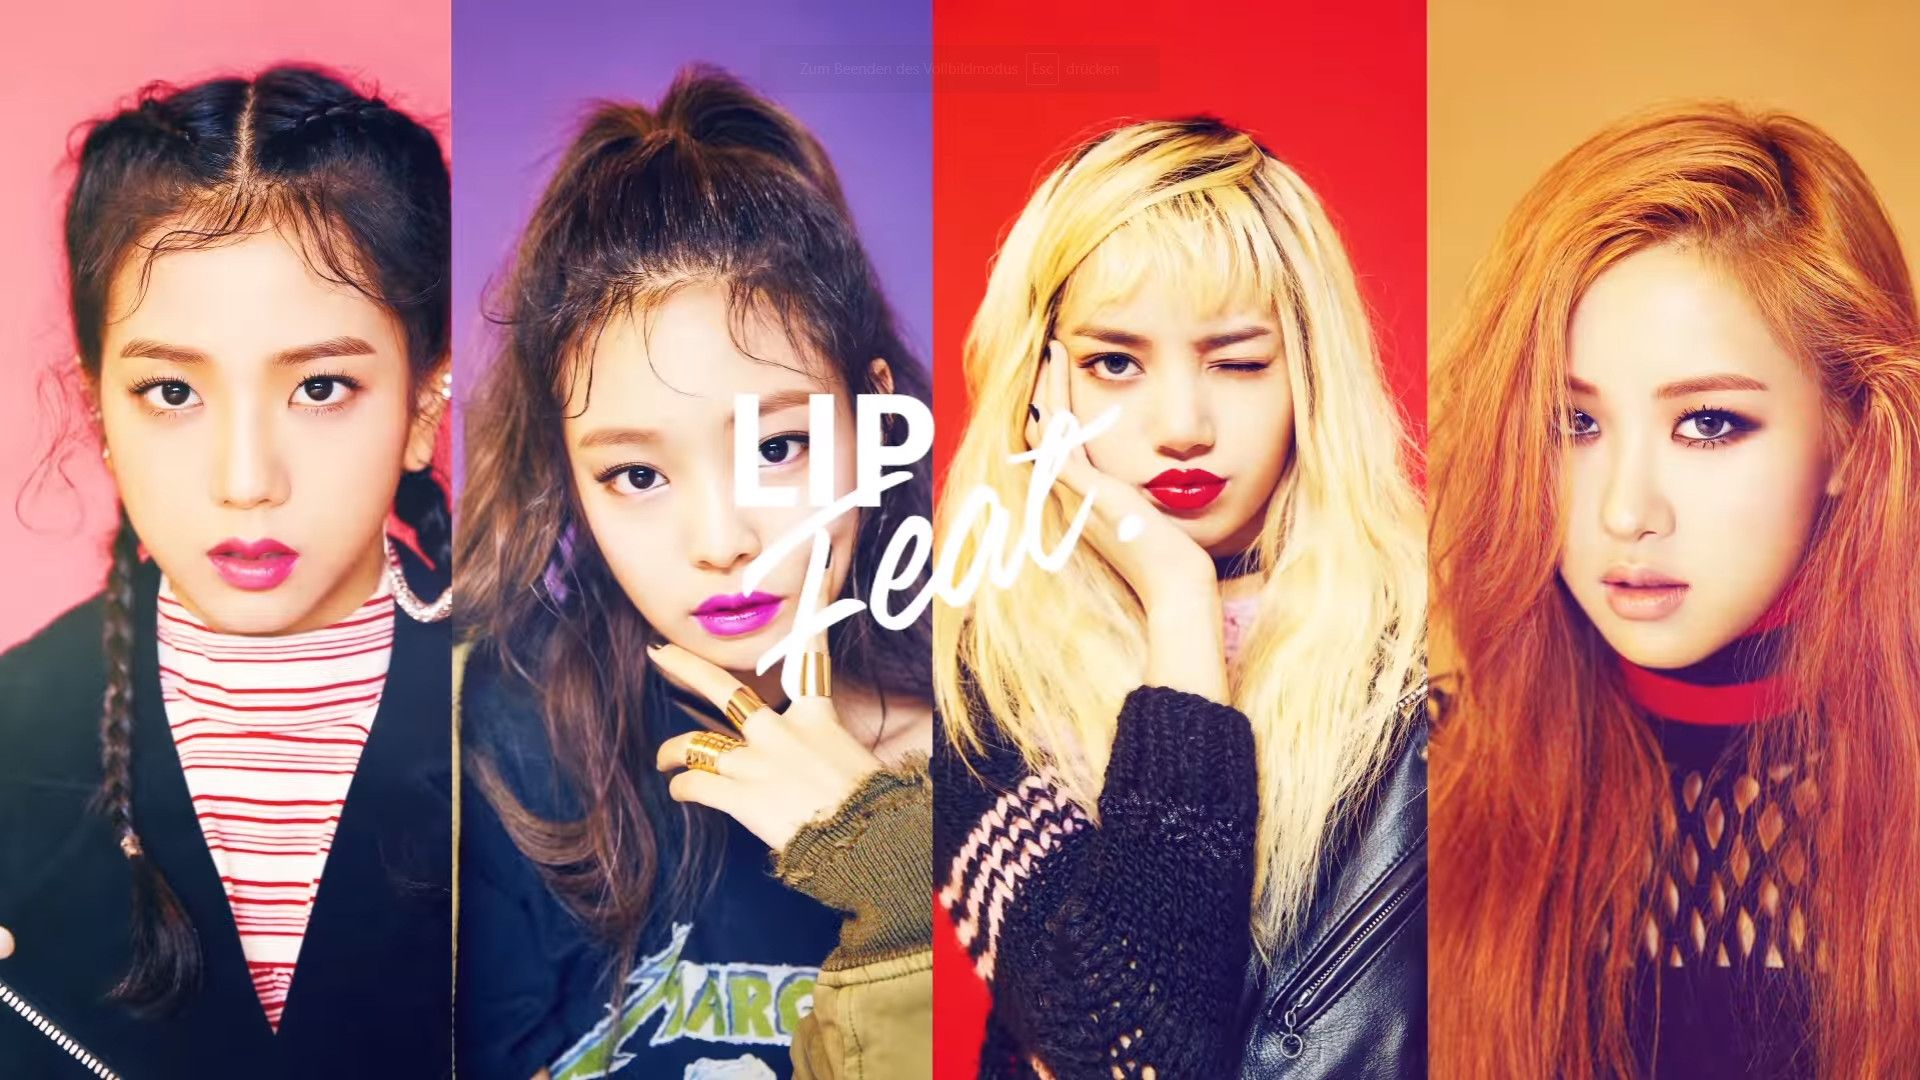 1920x1080 Blackpink Blink Moonshot Jisoo Jennie Lisa Rose Full 1080p Pictures Can Be Used As Wallpapers Or Anything Else Blackpink Black Pink Pink